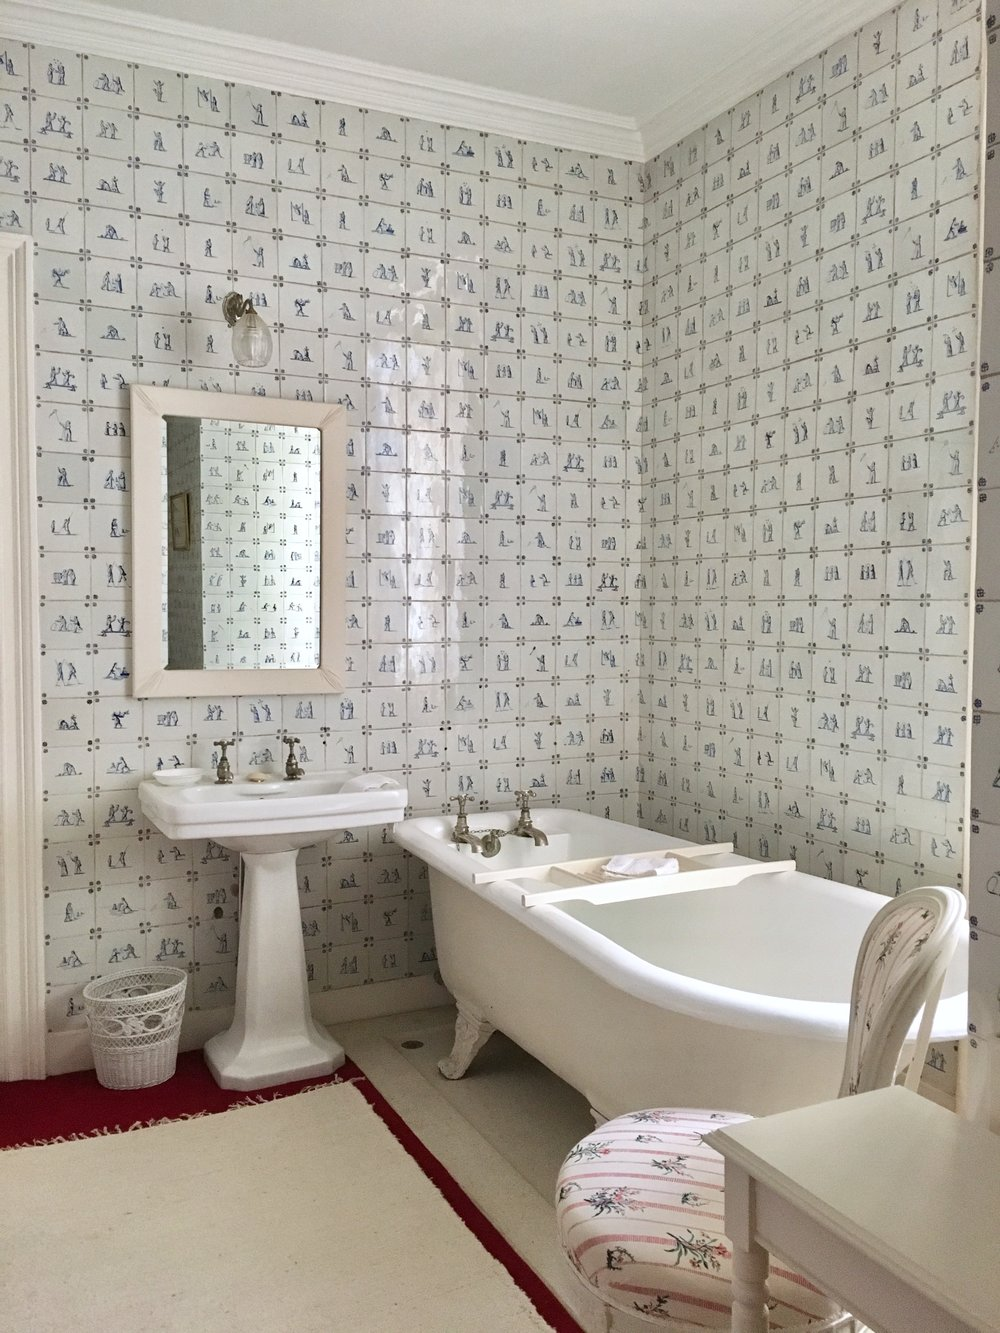 UK Waddesdon Manor ensuite bathroom National Trust French Chateau Rothschild Buckinghamshire garden chateau Eileen Hsieh Follow That Bug .jpg